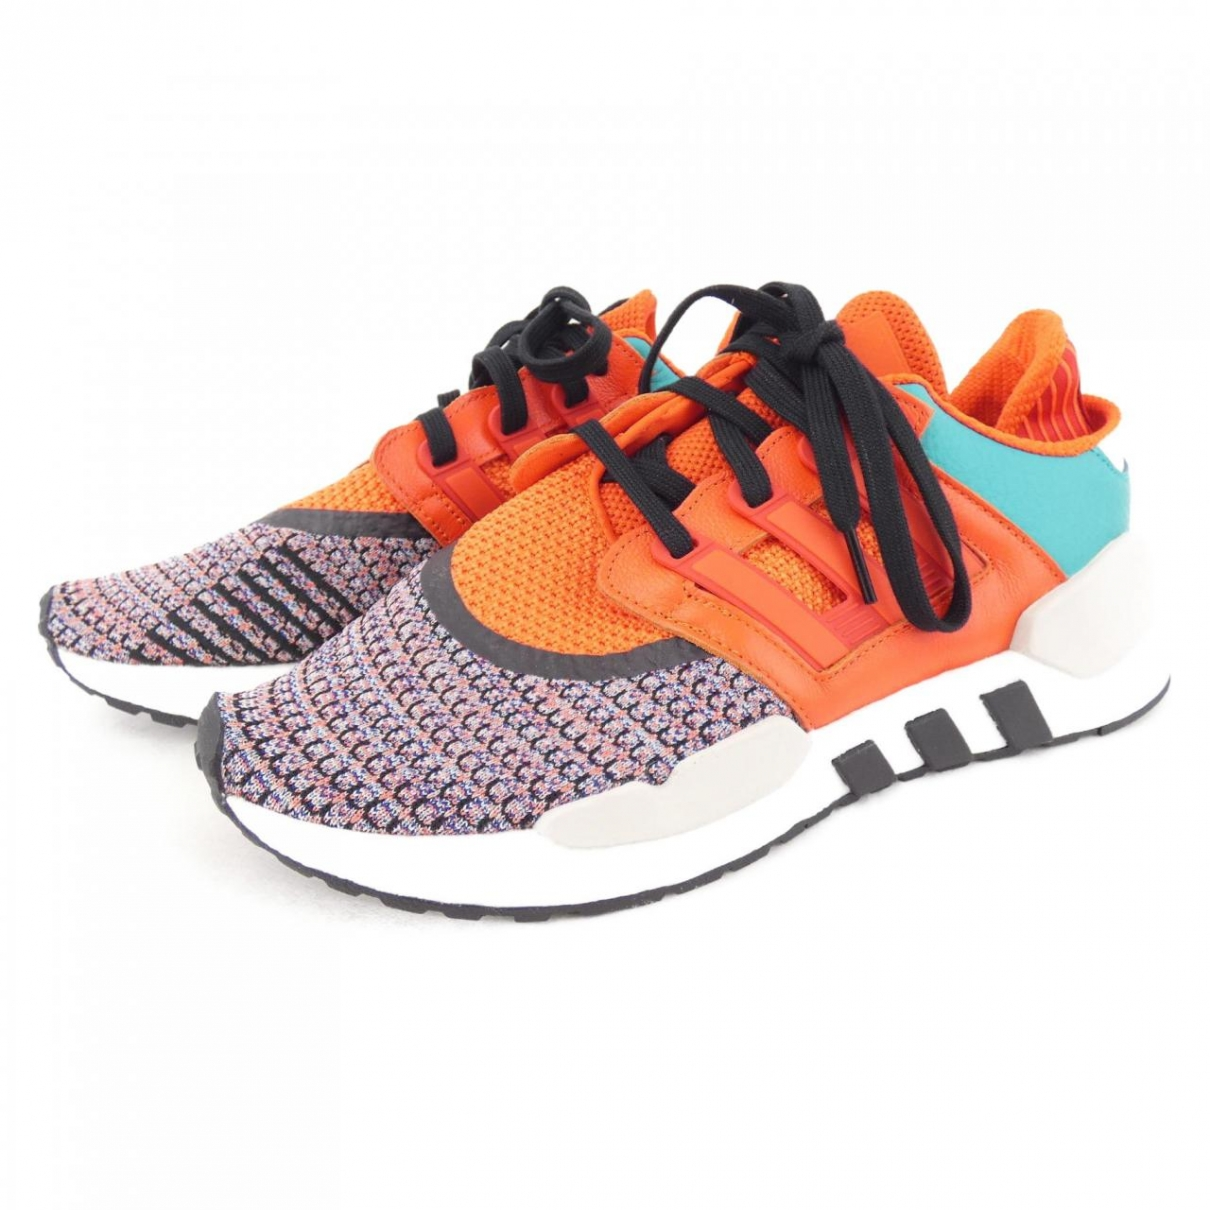 Adidas EQT Support Multicolour Cloth Trainers for Men 9.5 US